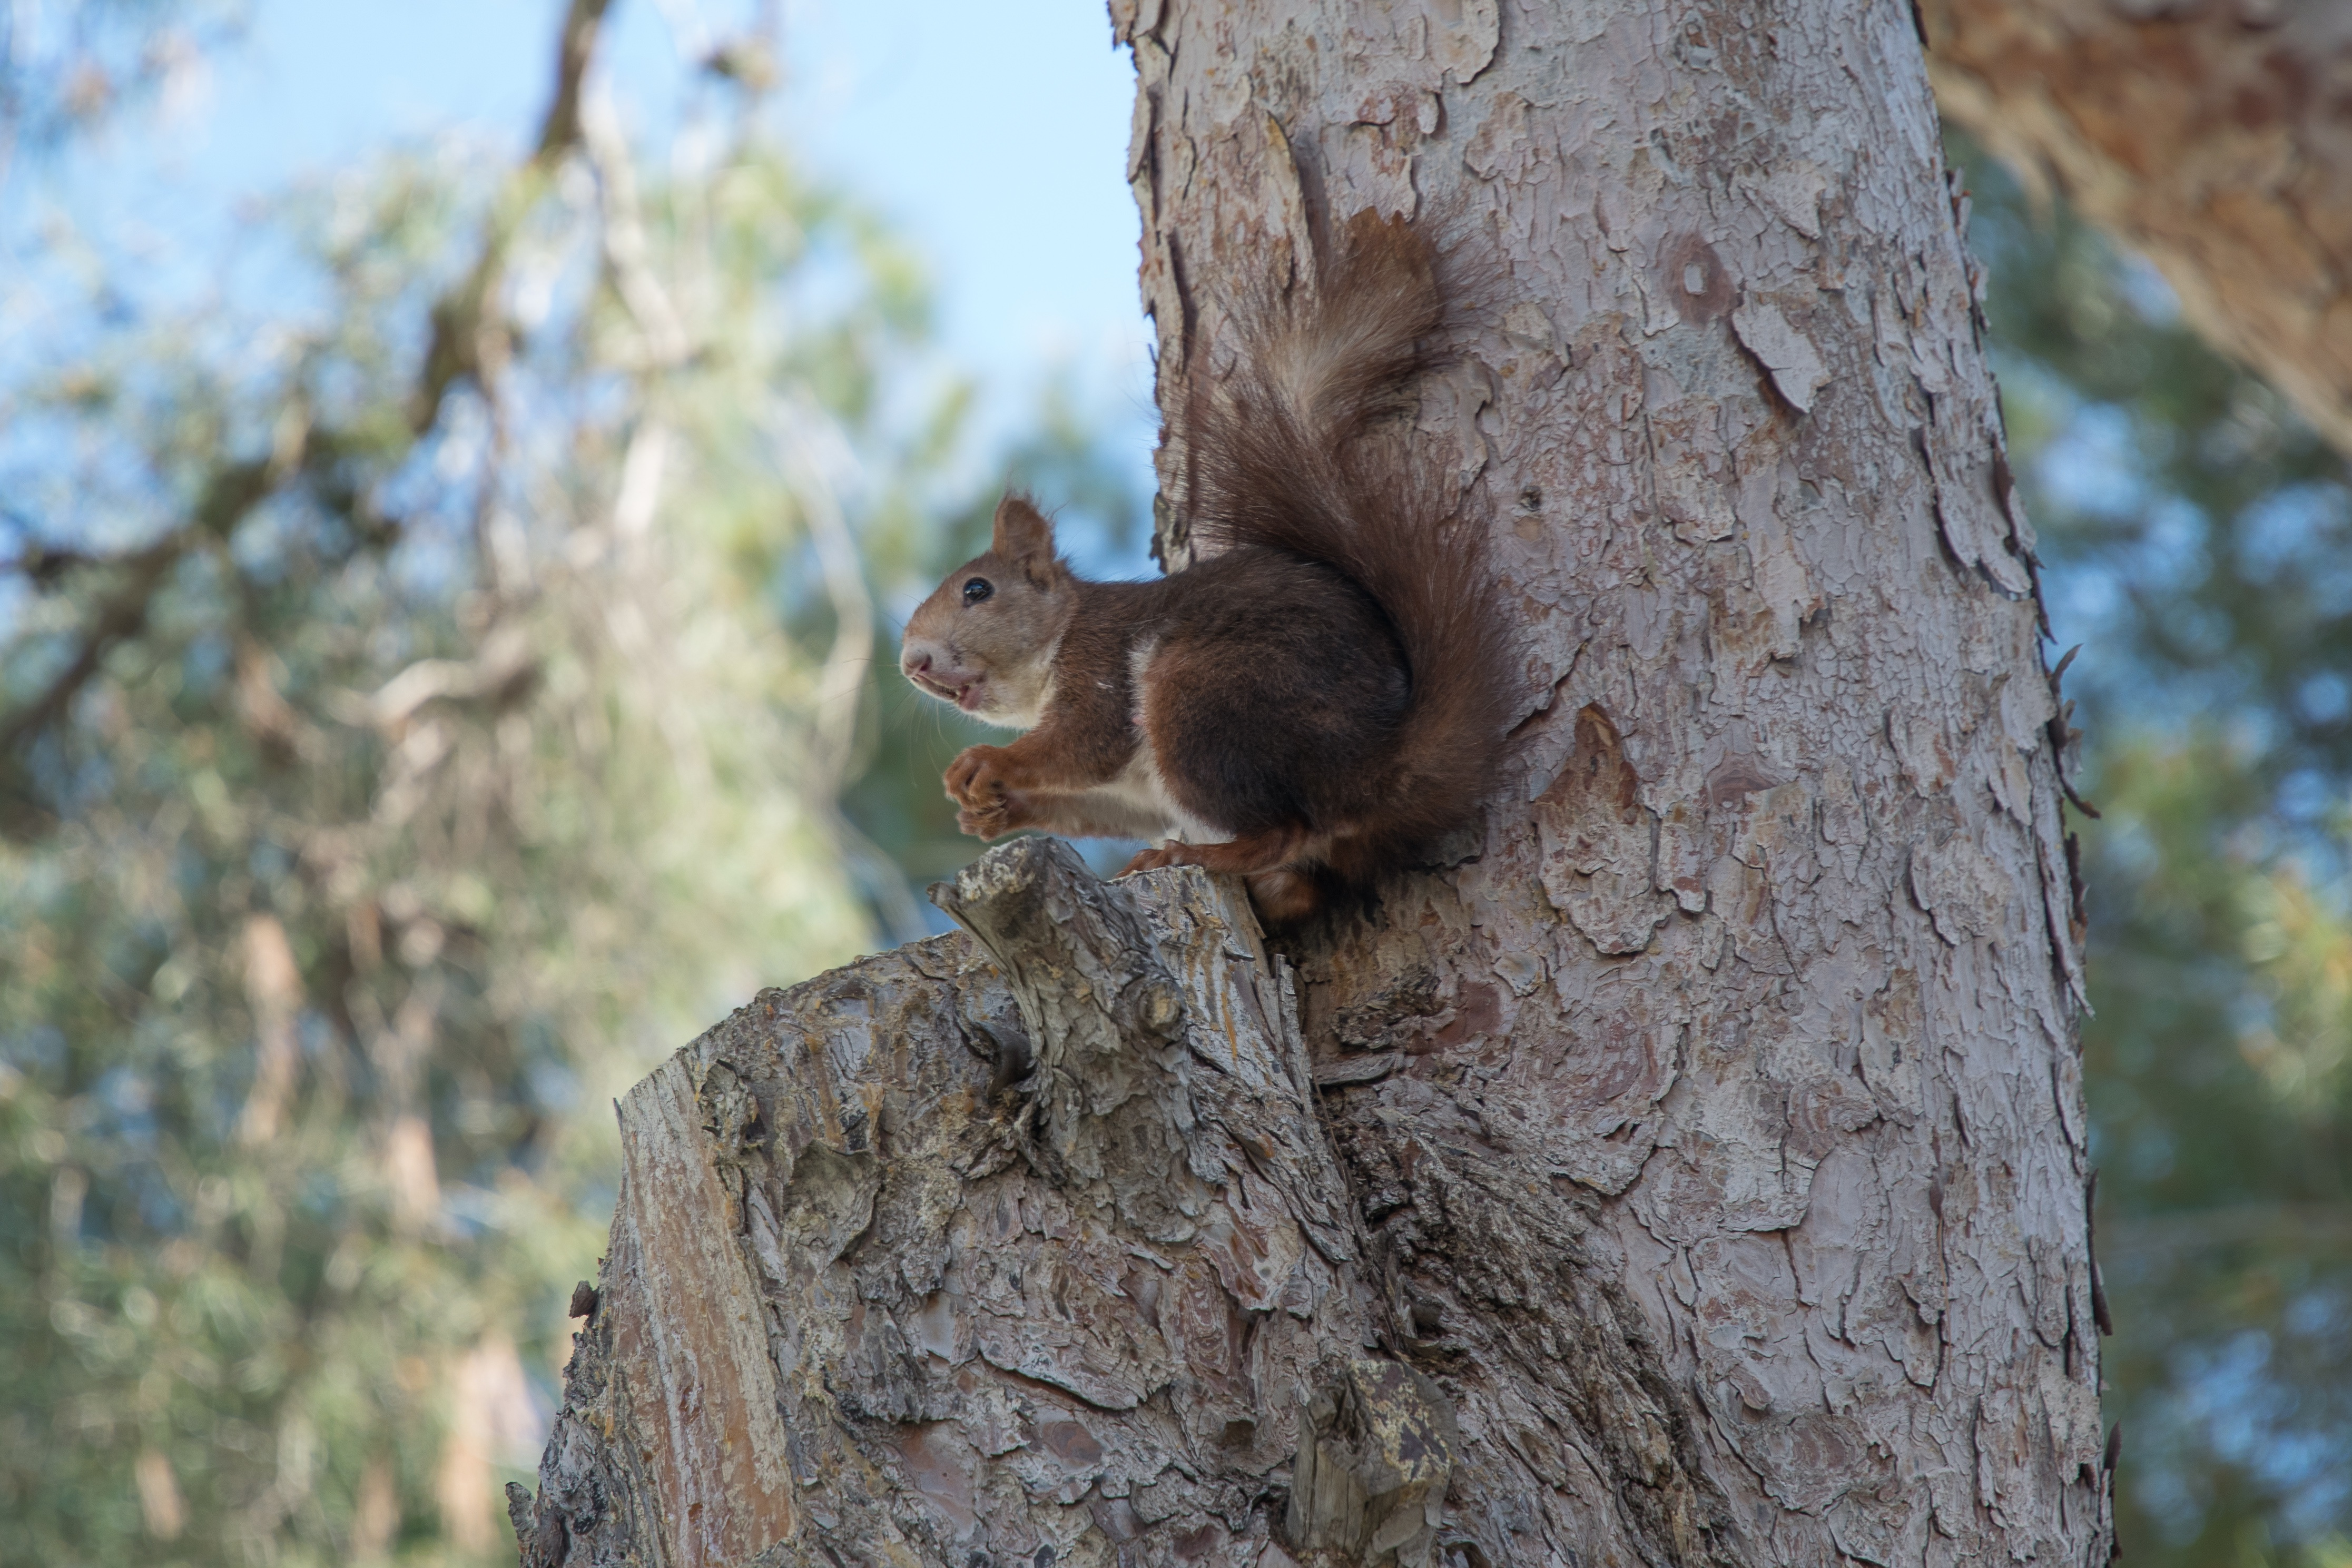 92312 download wallpaper Animals, Squirrel, Wood, Tree, Rodent screensavers and pictures for free